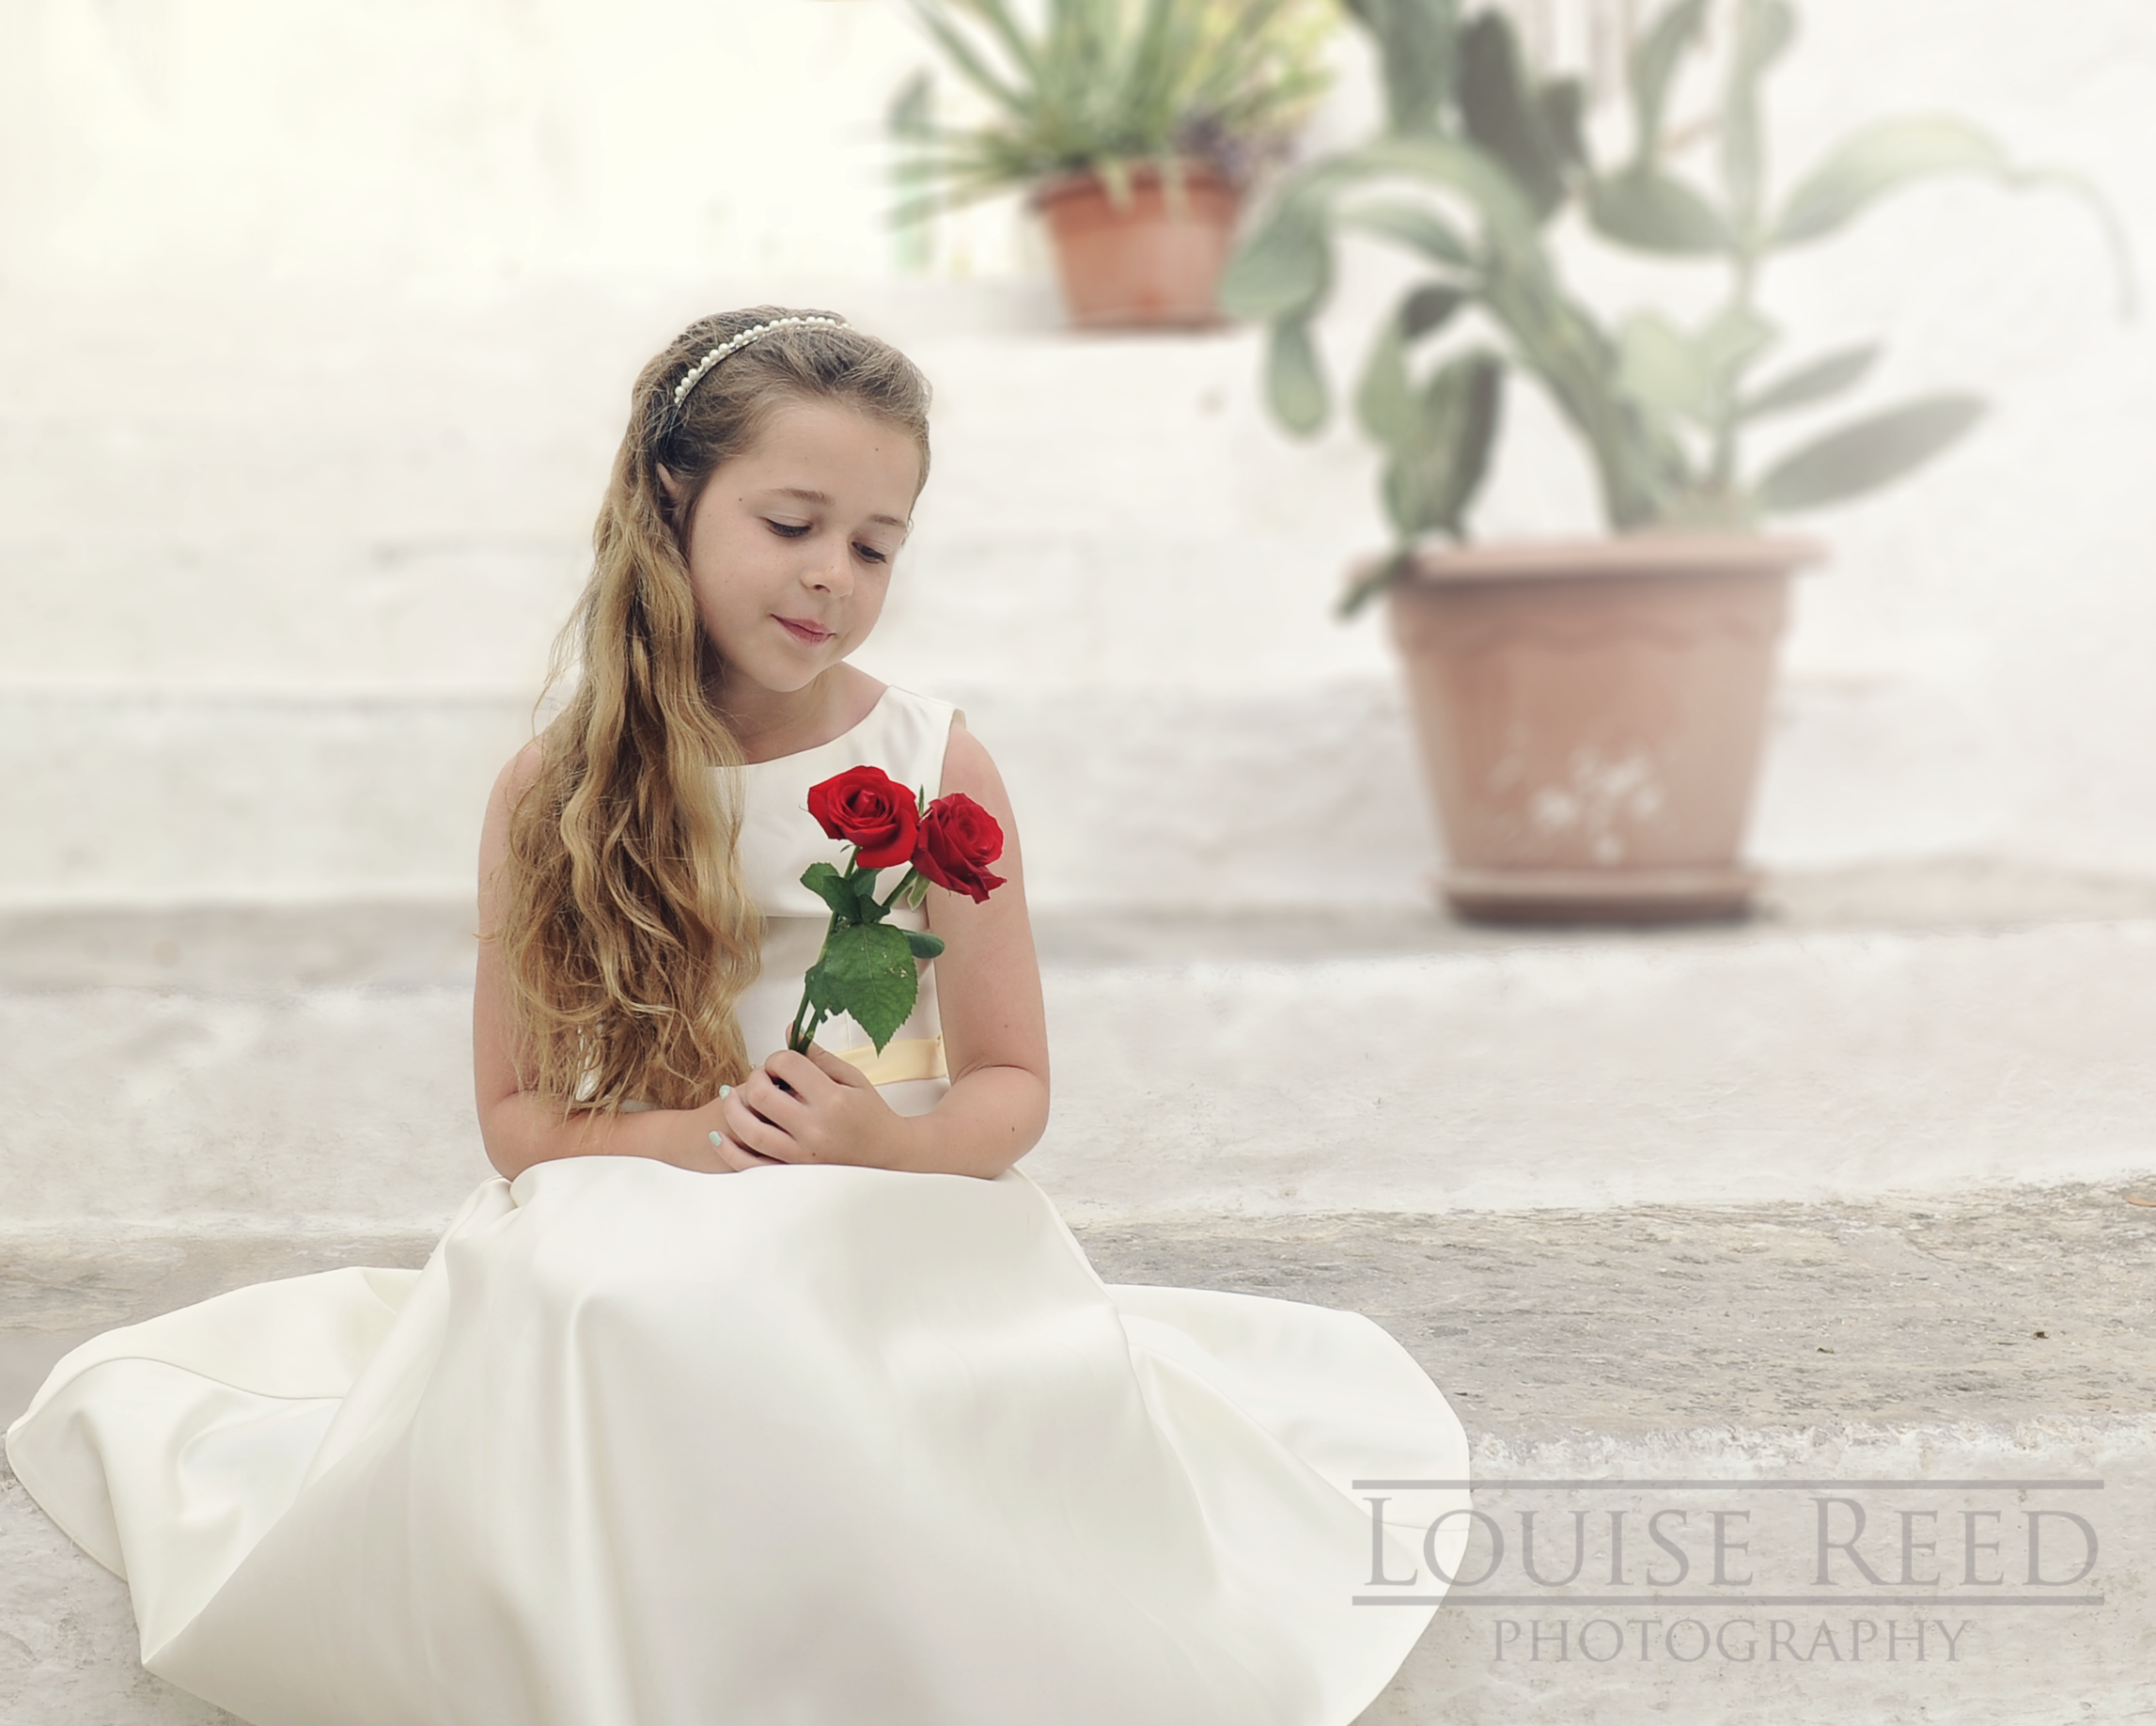 Louise Reed Wedding Photography